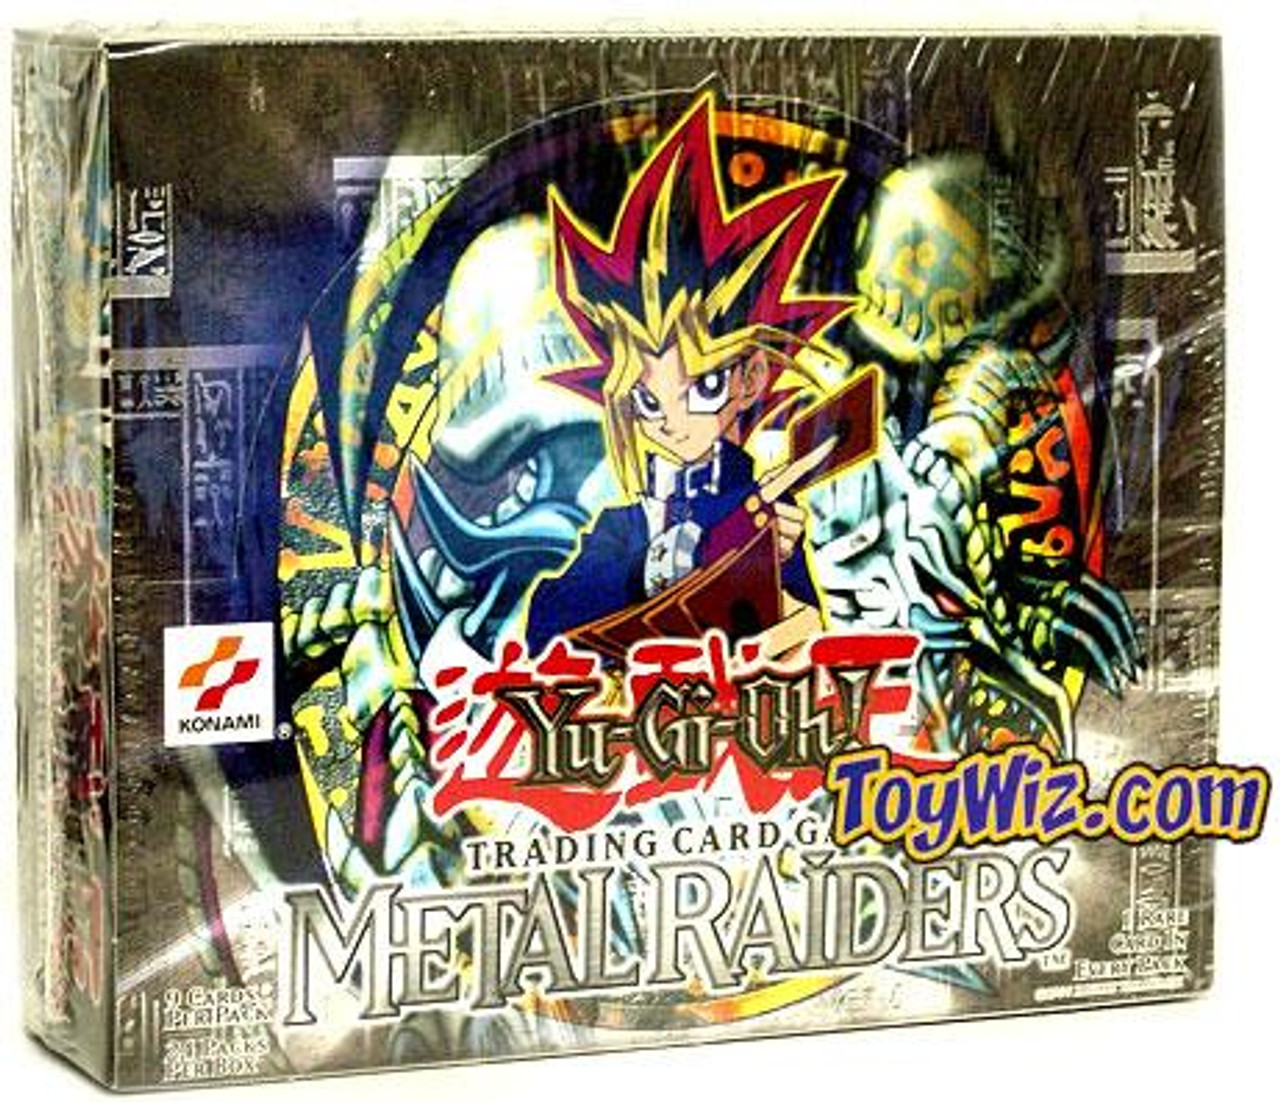 YuGiOh Metal Raiders (1st Edition) Booster Box [24 Packs] [Sealed]